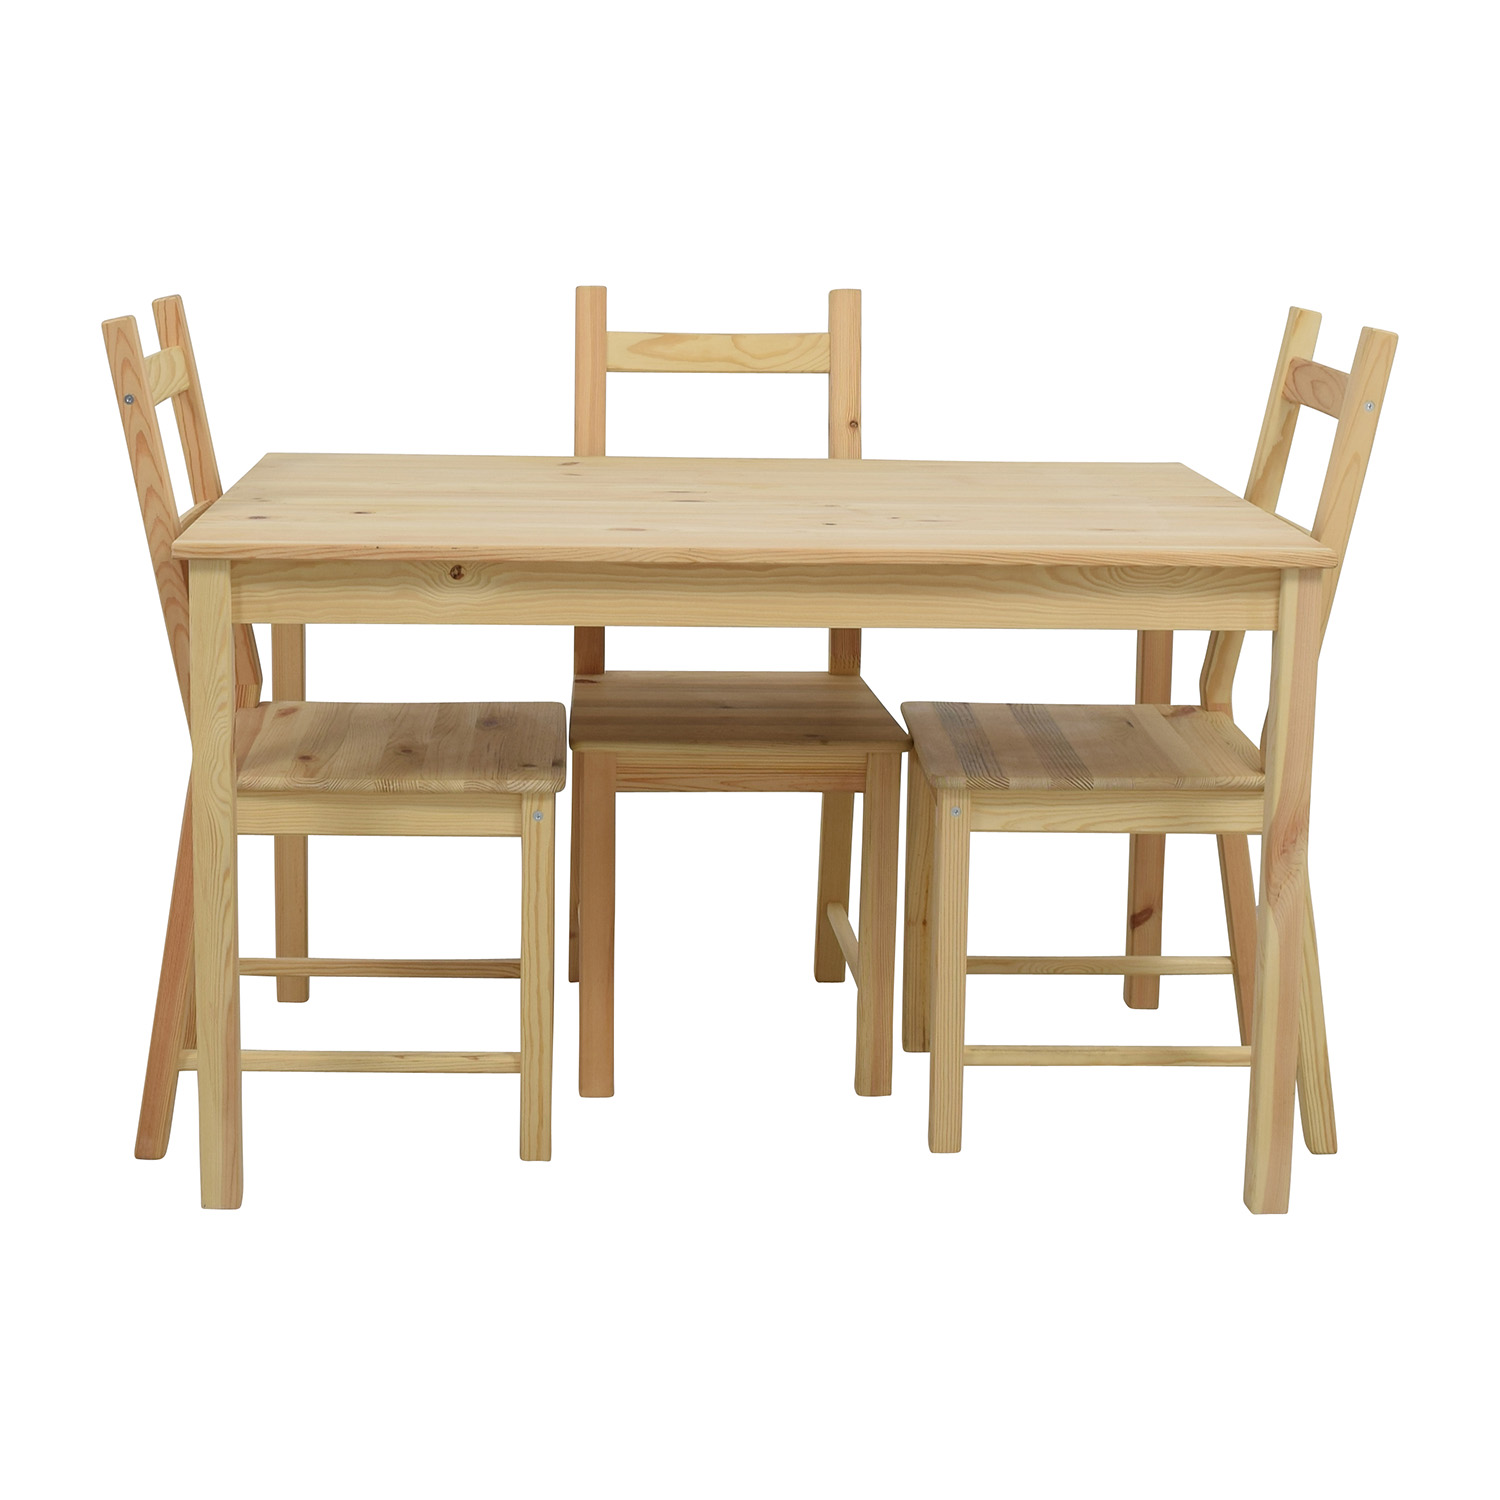 51 Off Ikea Ikea Ingo Pine Table With Ivar Pine Chairs Tables